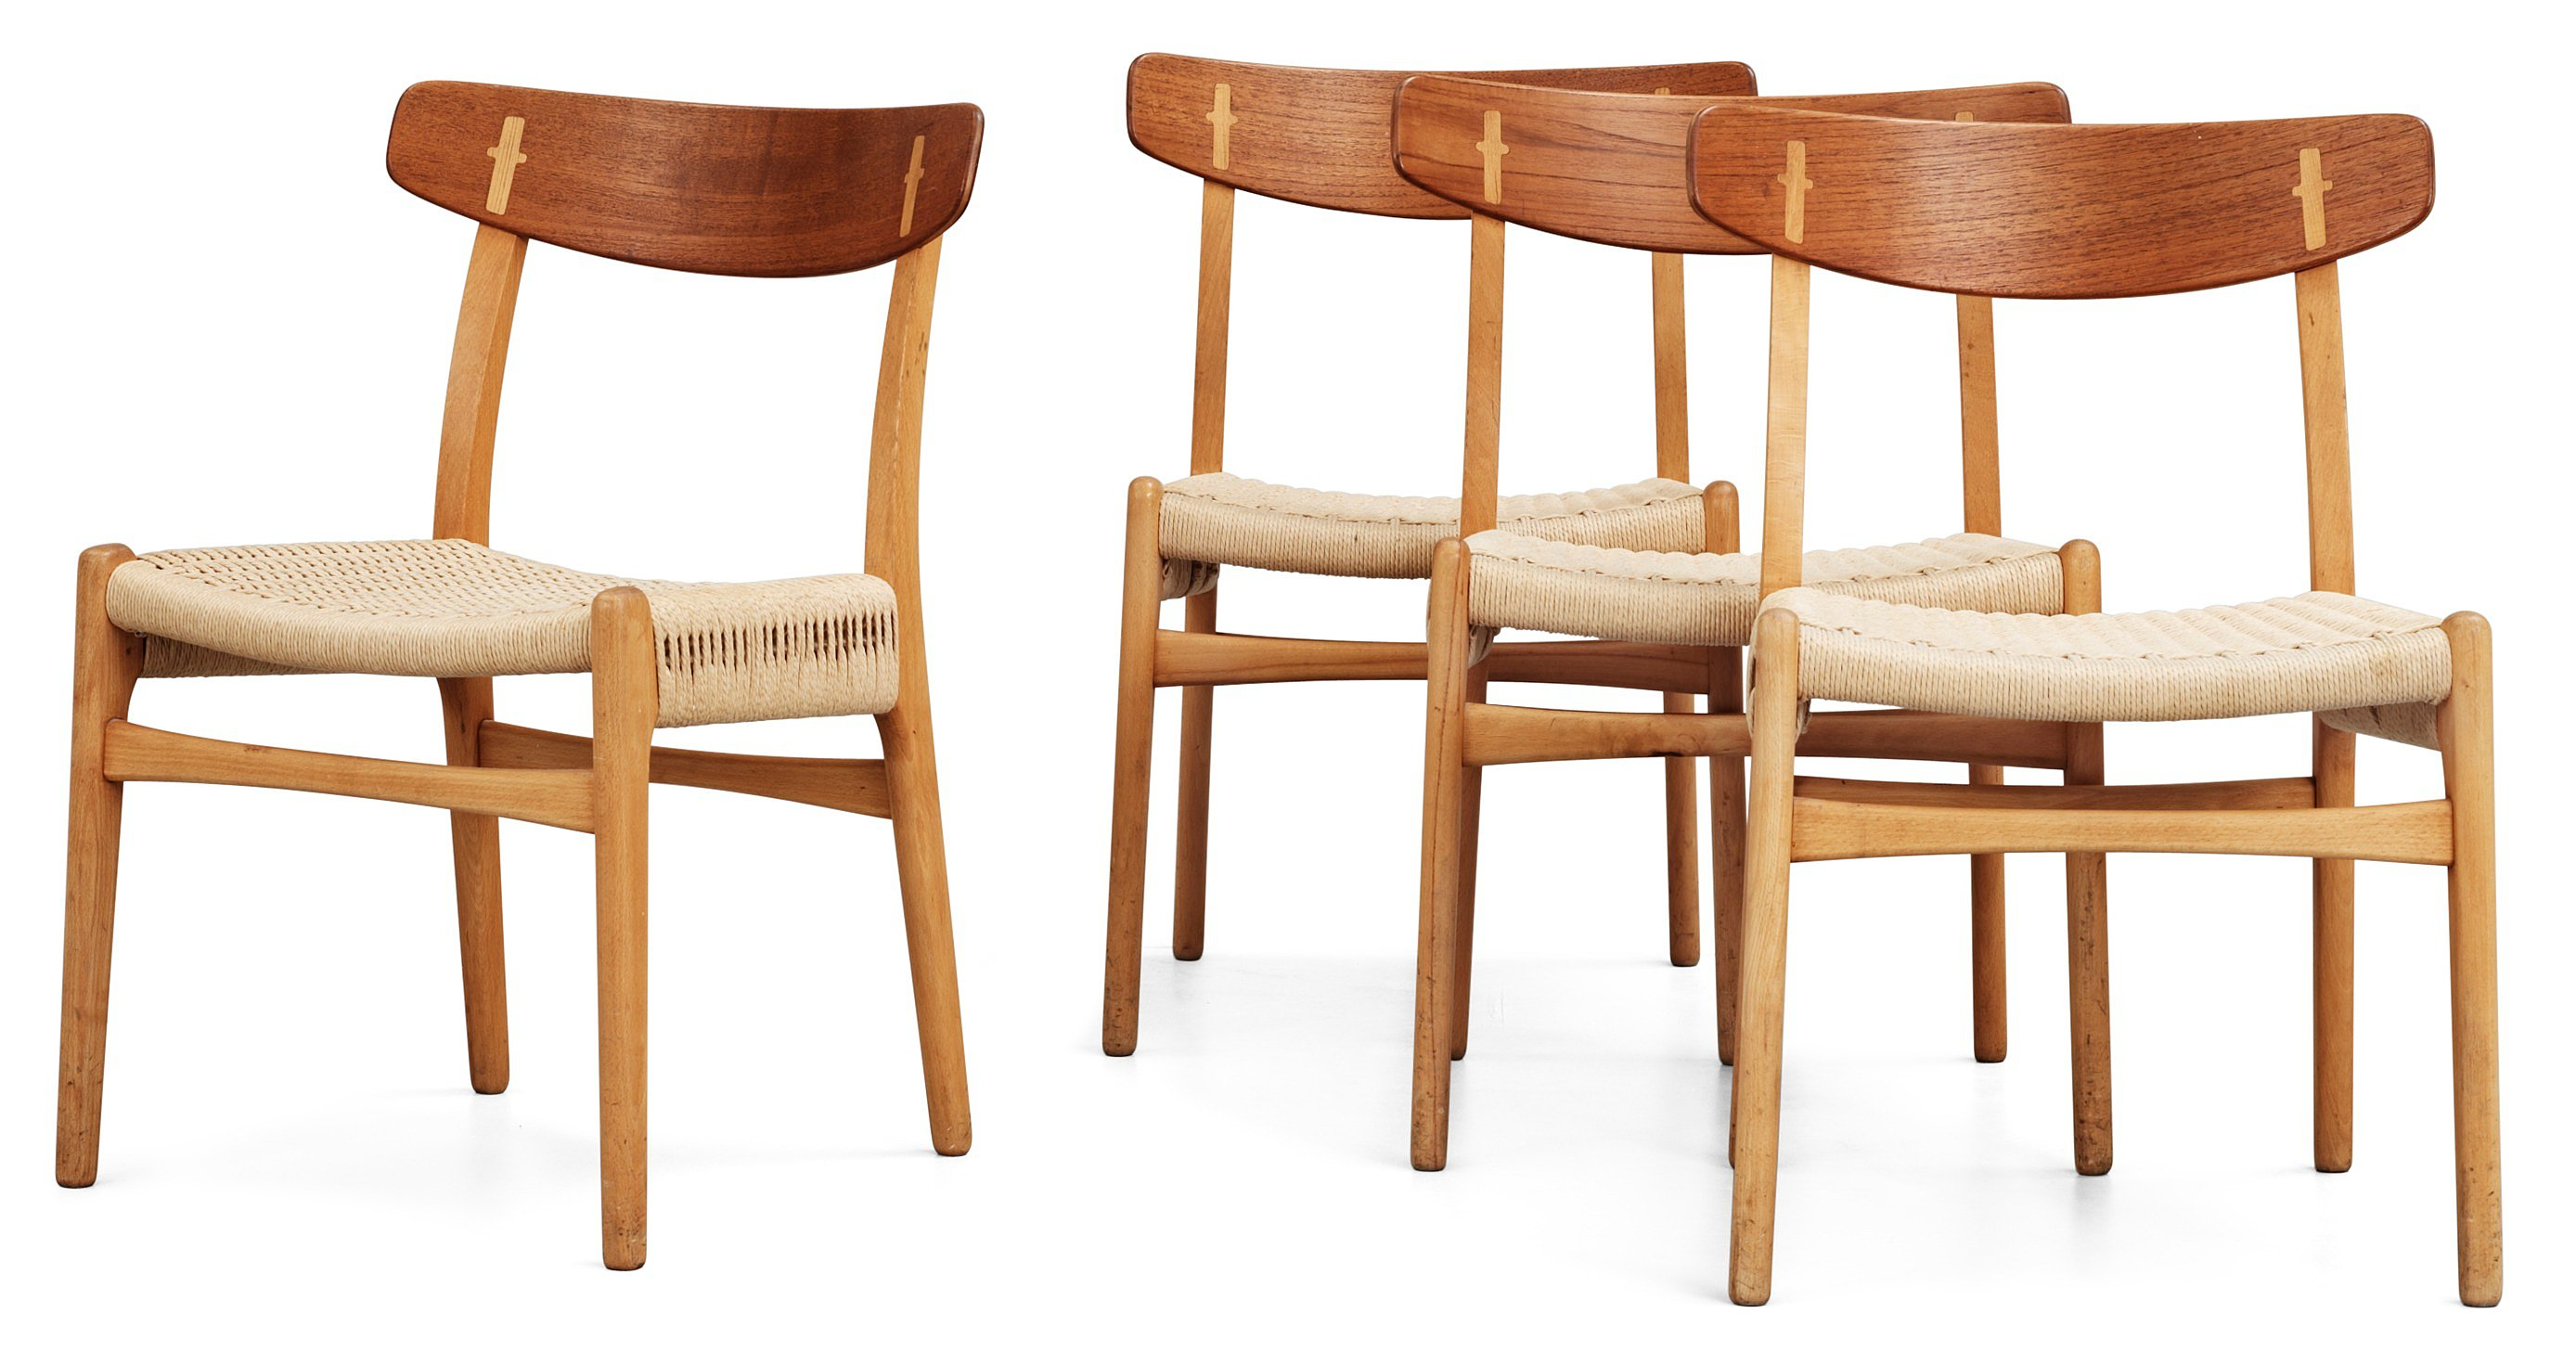 a set of four hans j wegner ch 23 oak chairs by carl. Black Bedroom Furniture Sets. Home Design Ideas